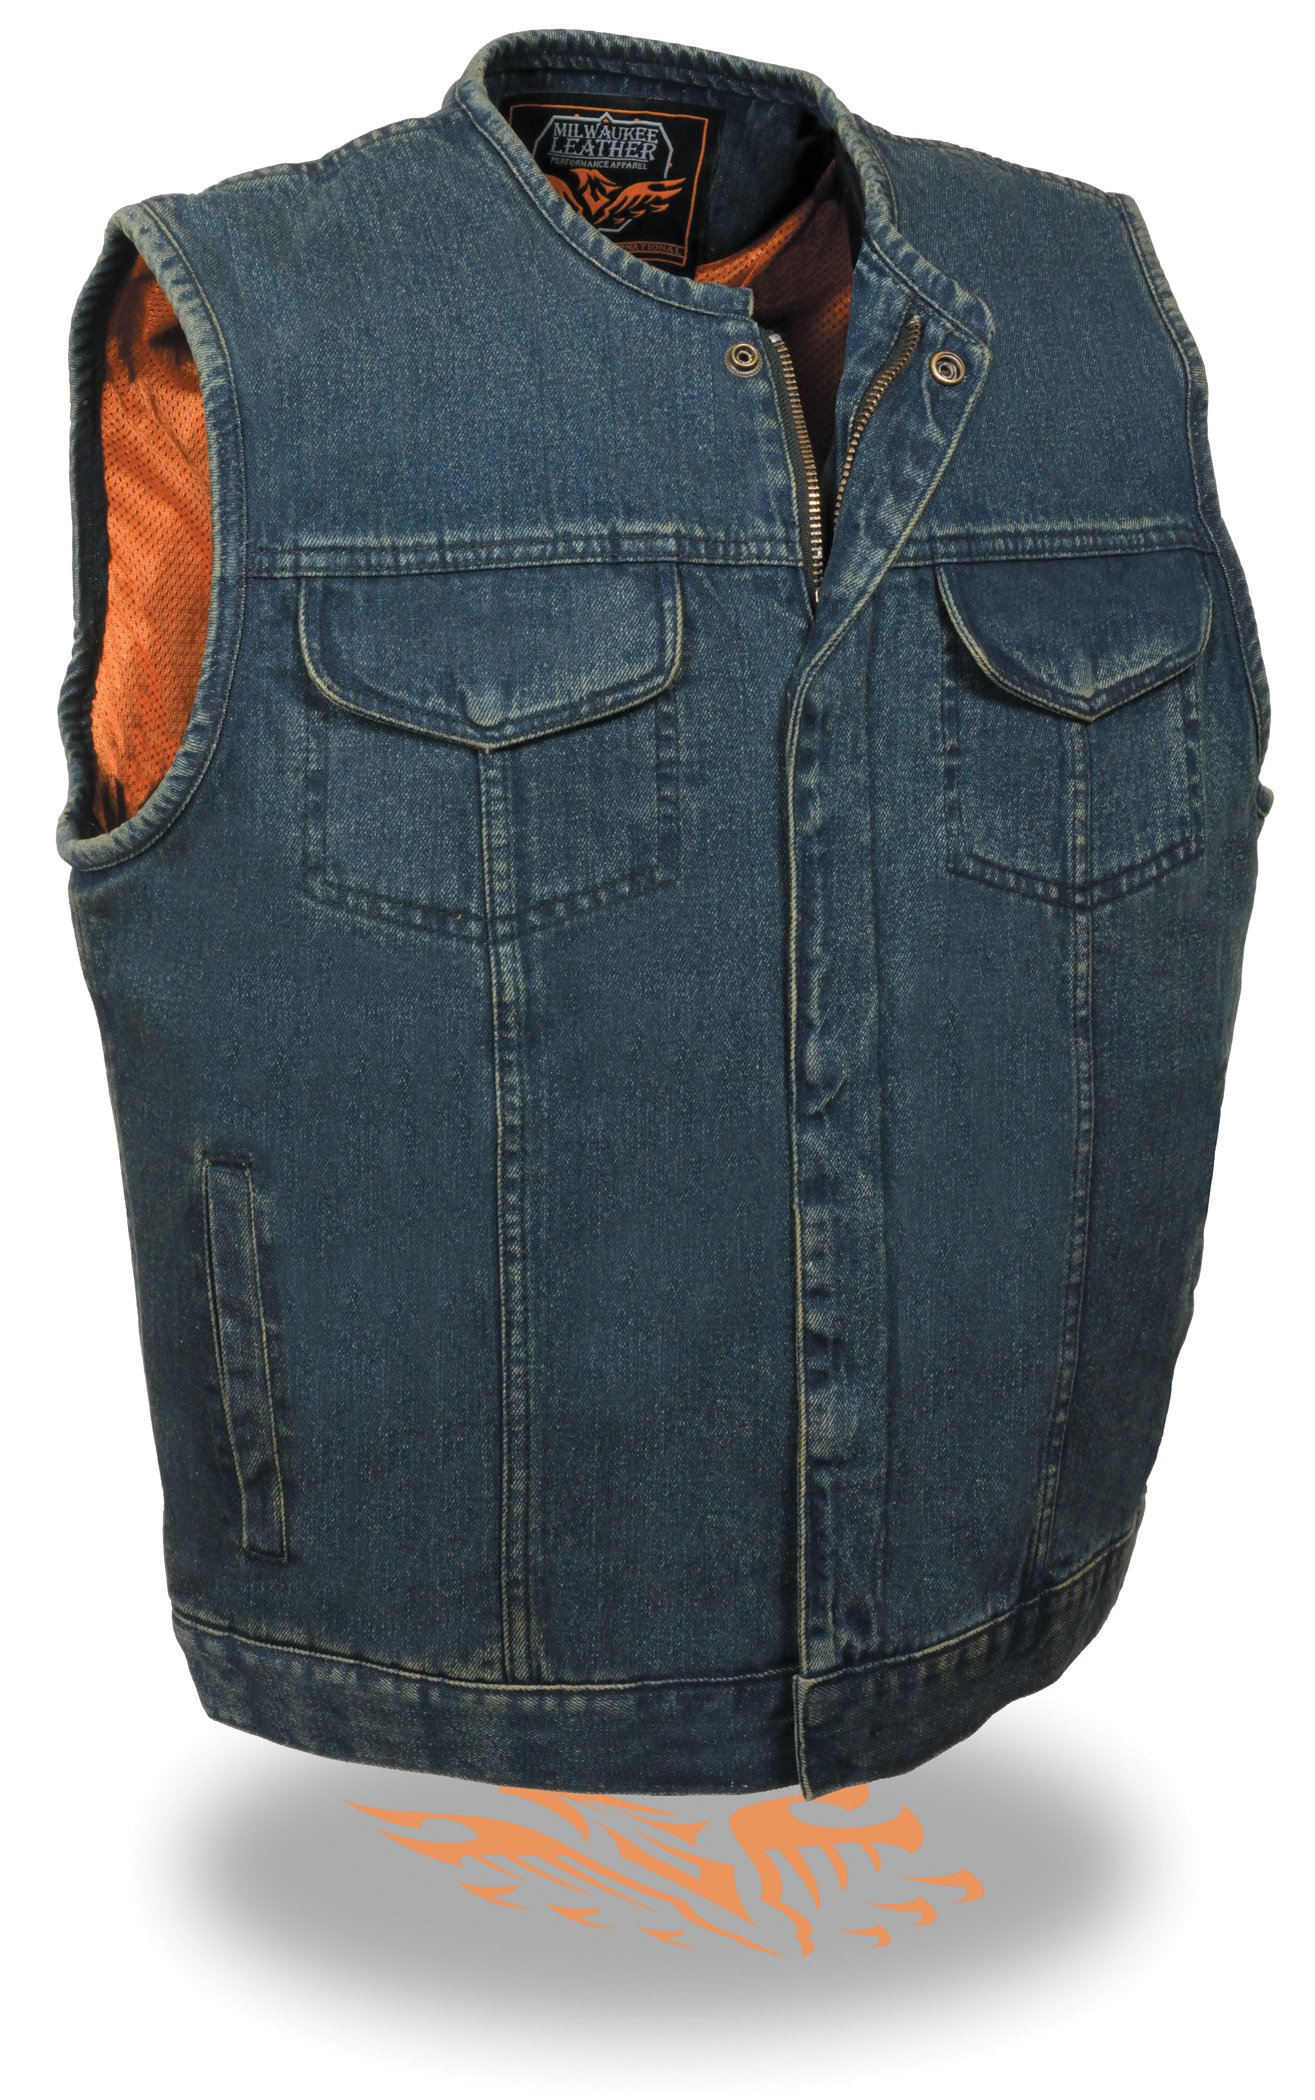 The Ultimate One Stop Shop for All Club Style Zipper Front Vests - All Varieties of Club Cut Vests Leather & Denim (XX-Large, Blue Denim - Collarless)